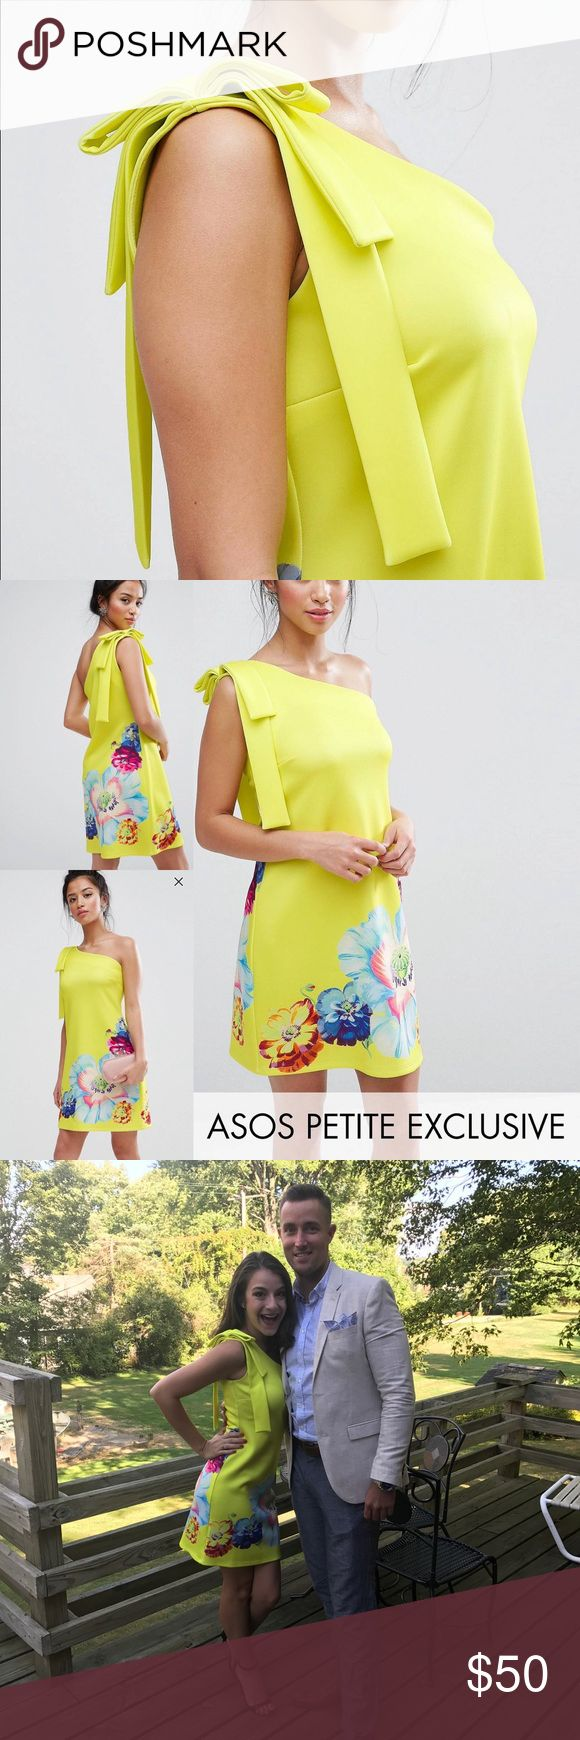 ASOS PETITE Off-The-Shoulder Dress IN LIKE NEW CONDITION! ✨ I've only worn it once to a wedding! ASOS Petite Dresses One Shoulder